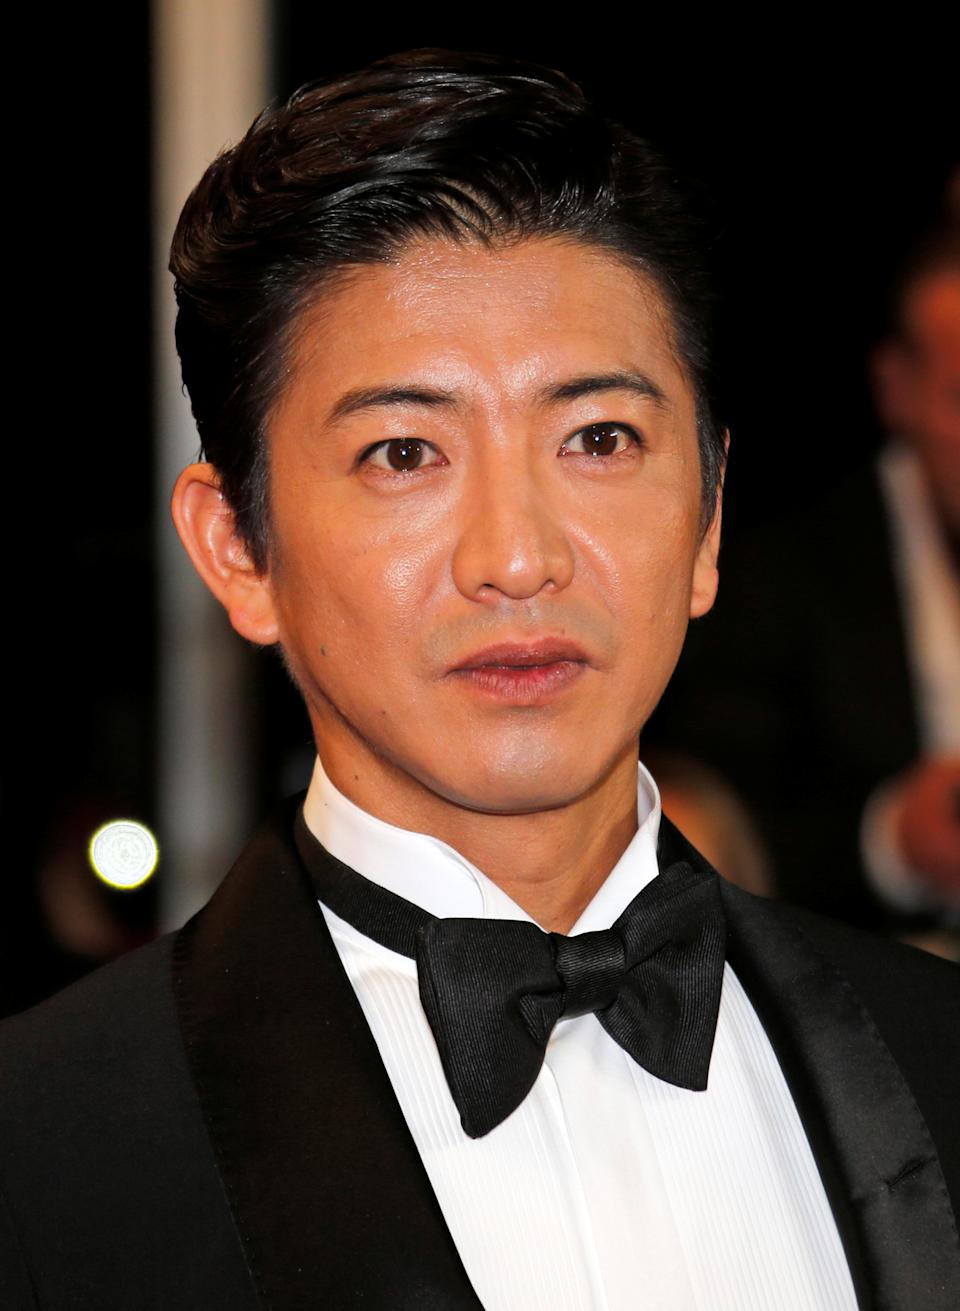 """70th Cannes Film Festival - Screening of the film """"Mugen no junin"""" (Blade of the Immortal) out of competition - Red Carpet Arrivals - Cannes, France. 18/05/2017. Cast memberTakuya Kimura poses. REUTERS/Jean-Paul Pelissier"""